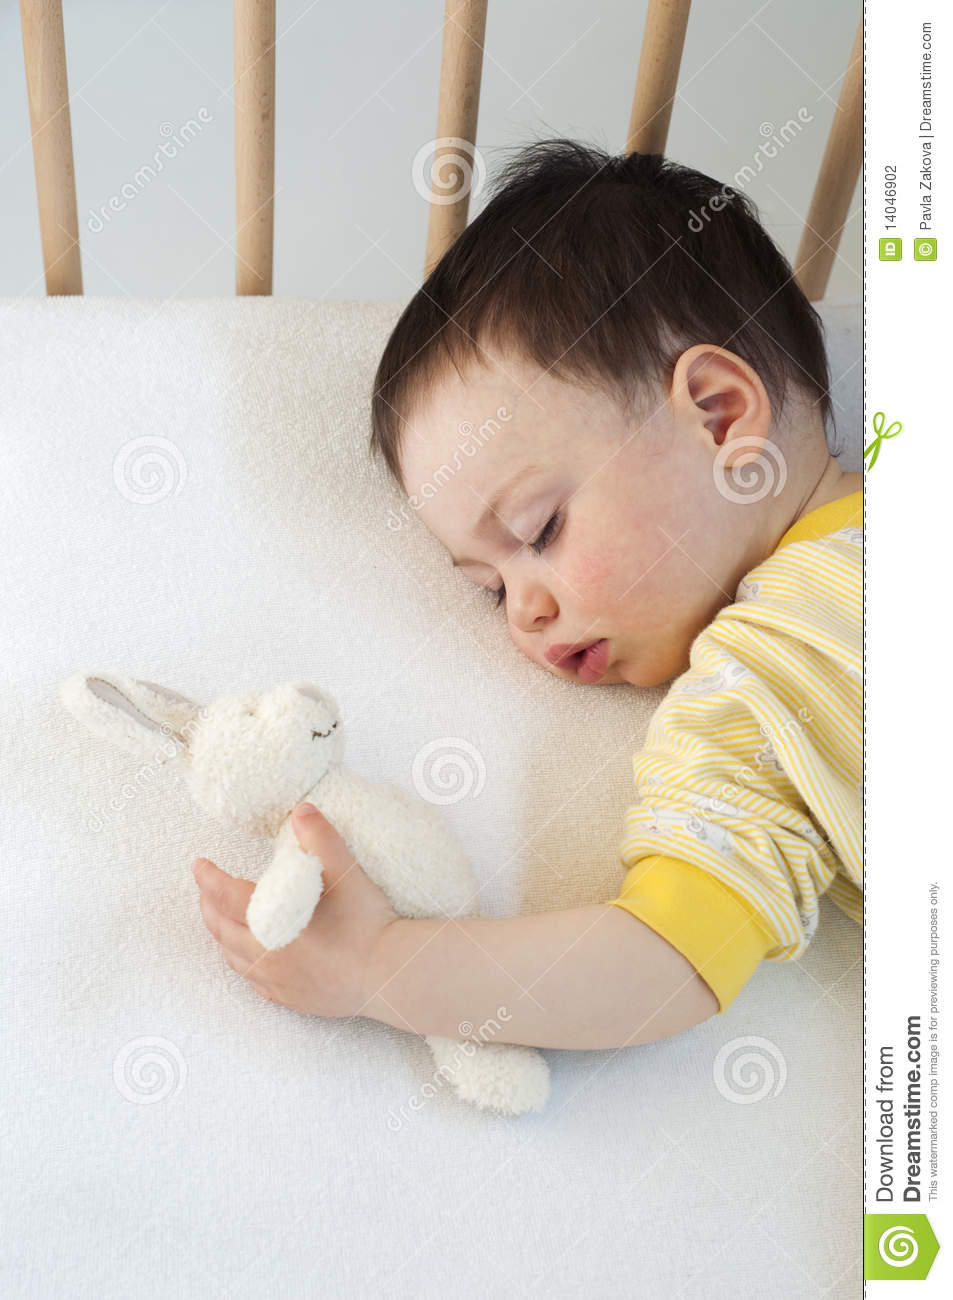 Baby Sleeping With A Soft Toy Stock Photography Image